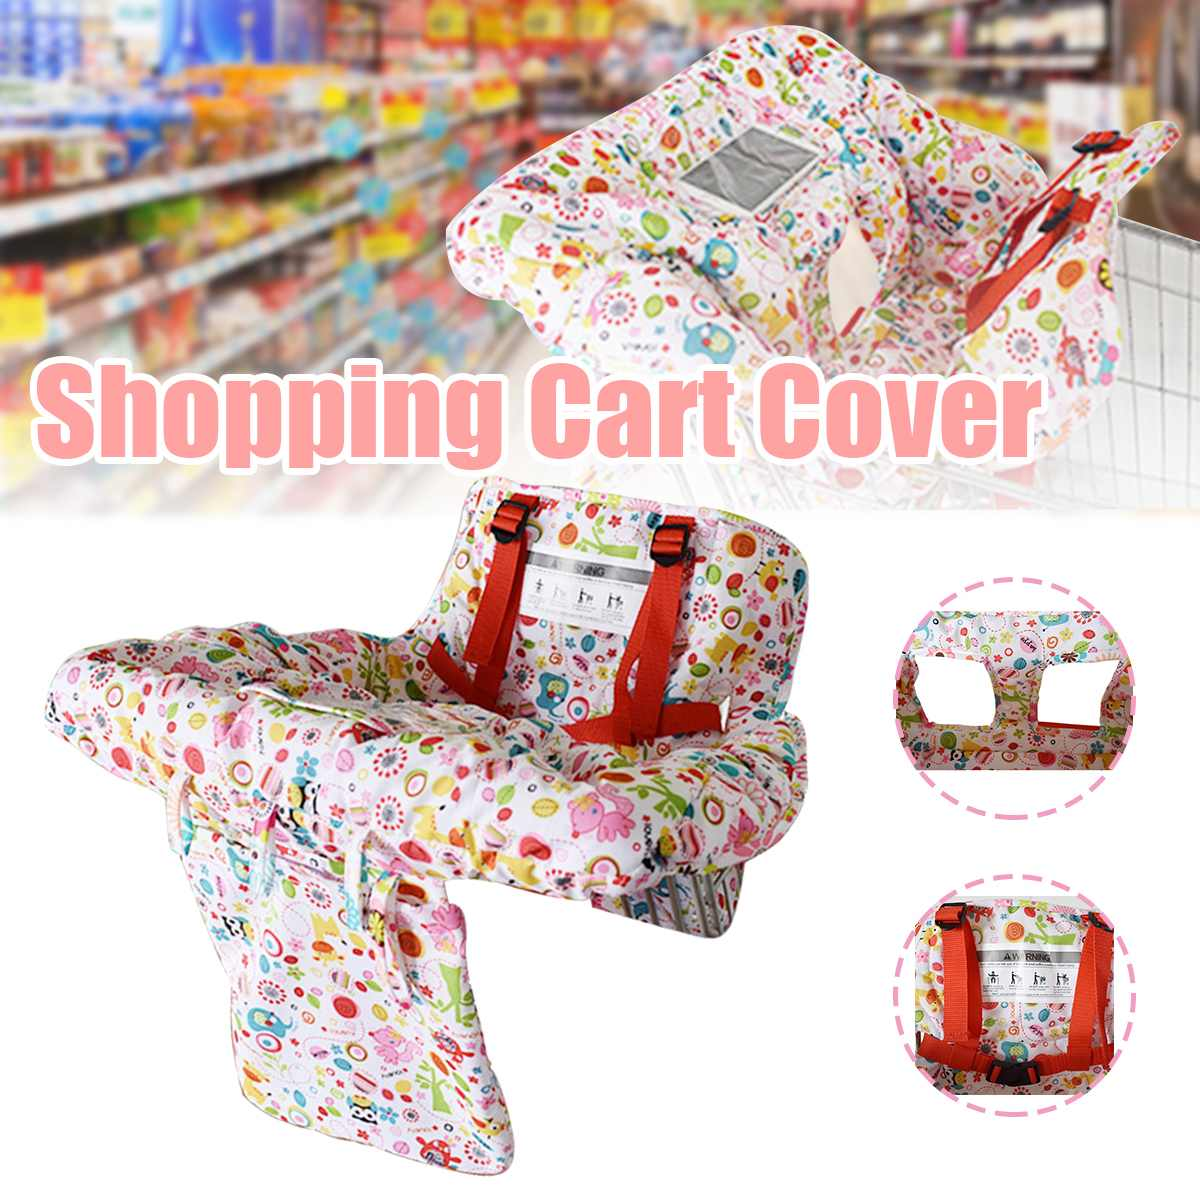 Multi-functional Baby Children Folding Shopping Cart Cover Baby Soft Warm Shopping Push Cart Protection Cover Car Seats Mat